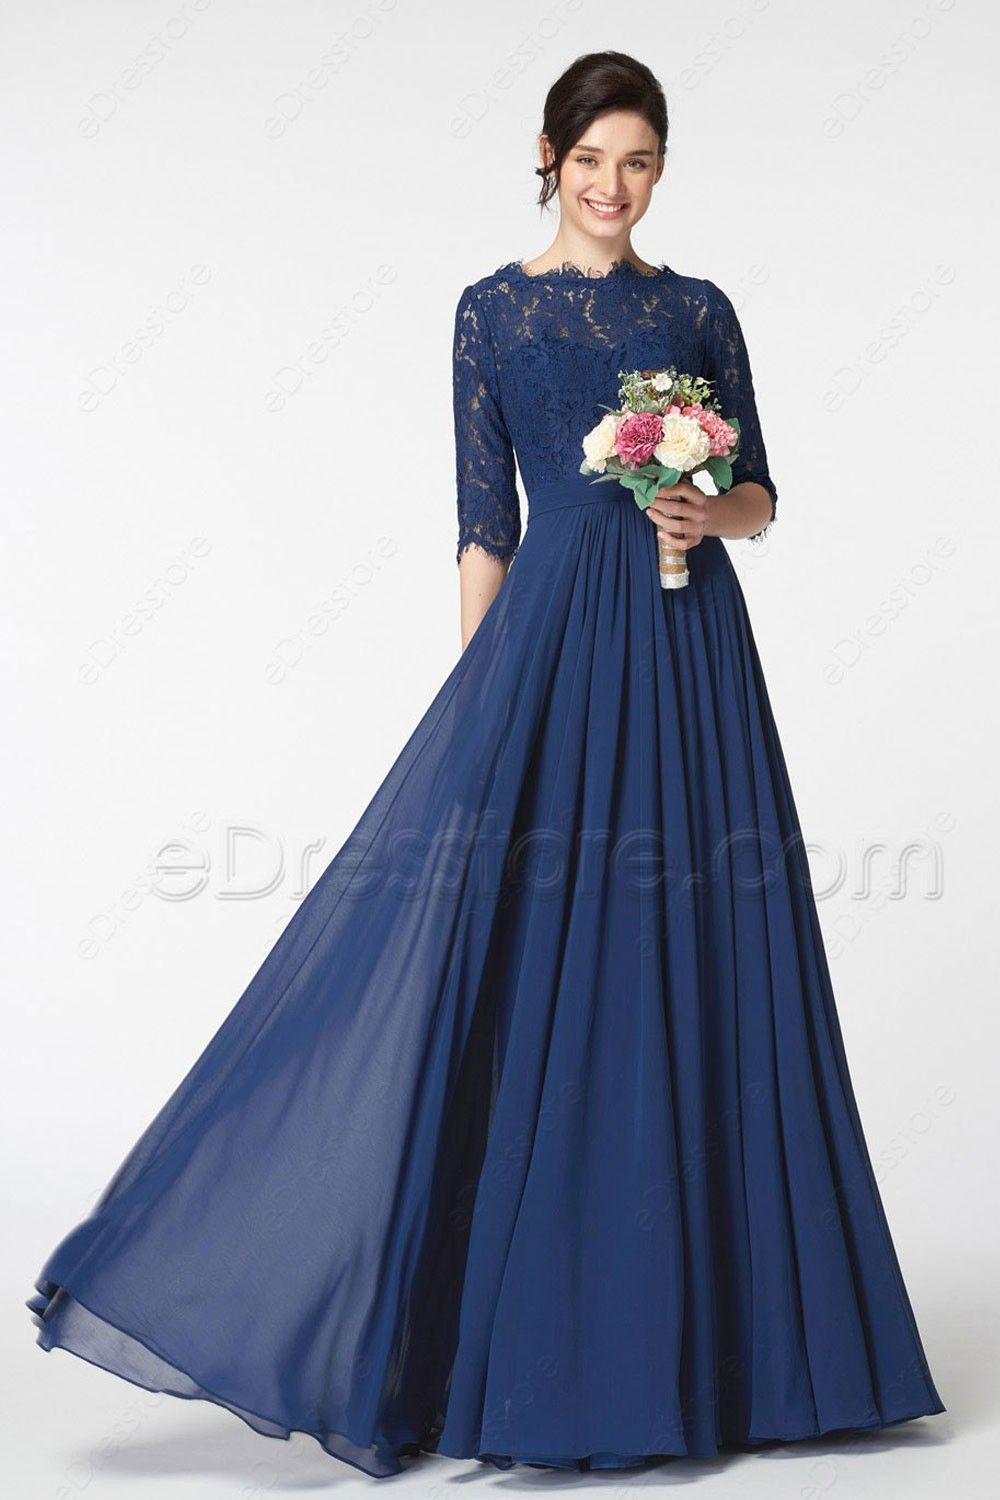 Navy Blue Lace Modest Bridesmaid Dress with Sleeves 3fa1882eca69